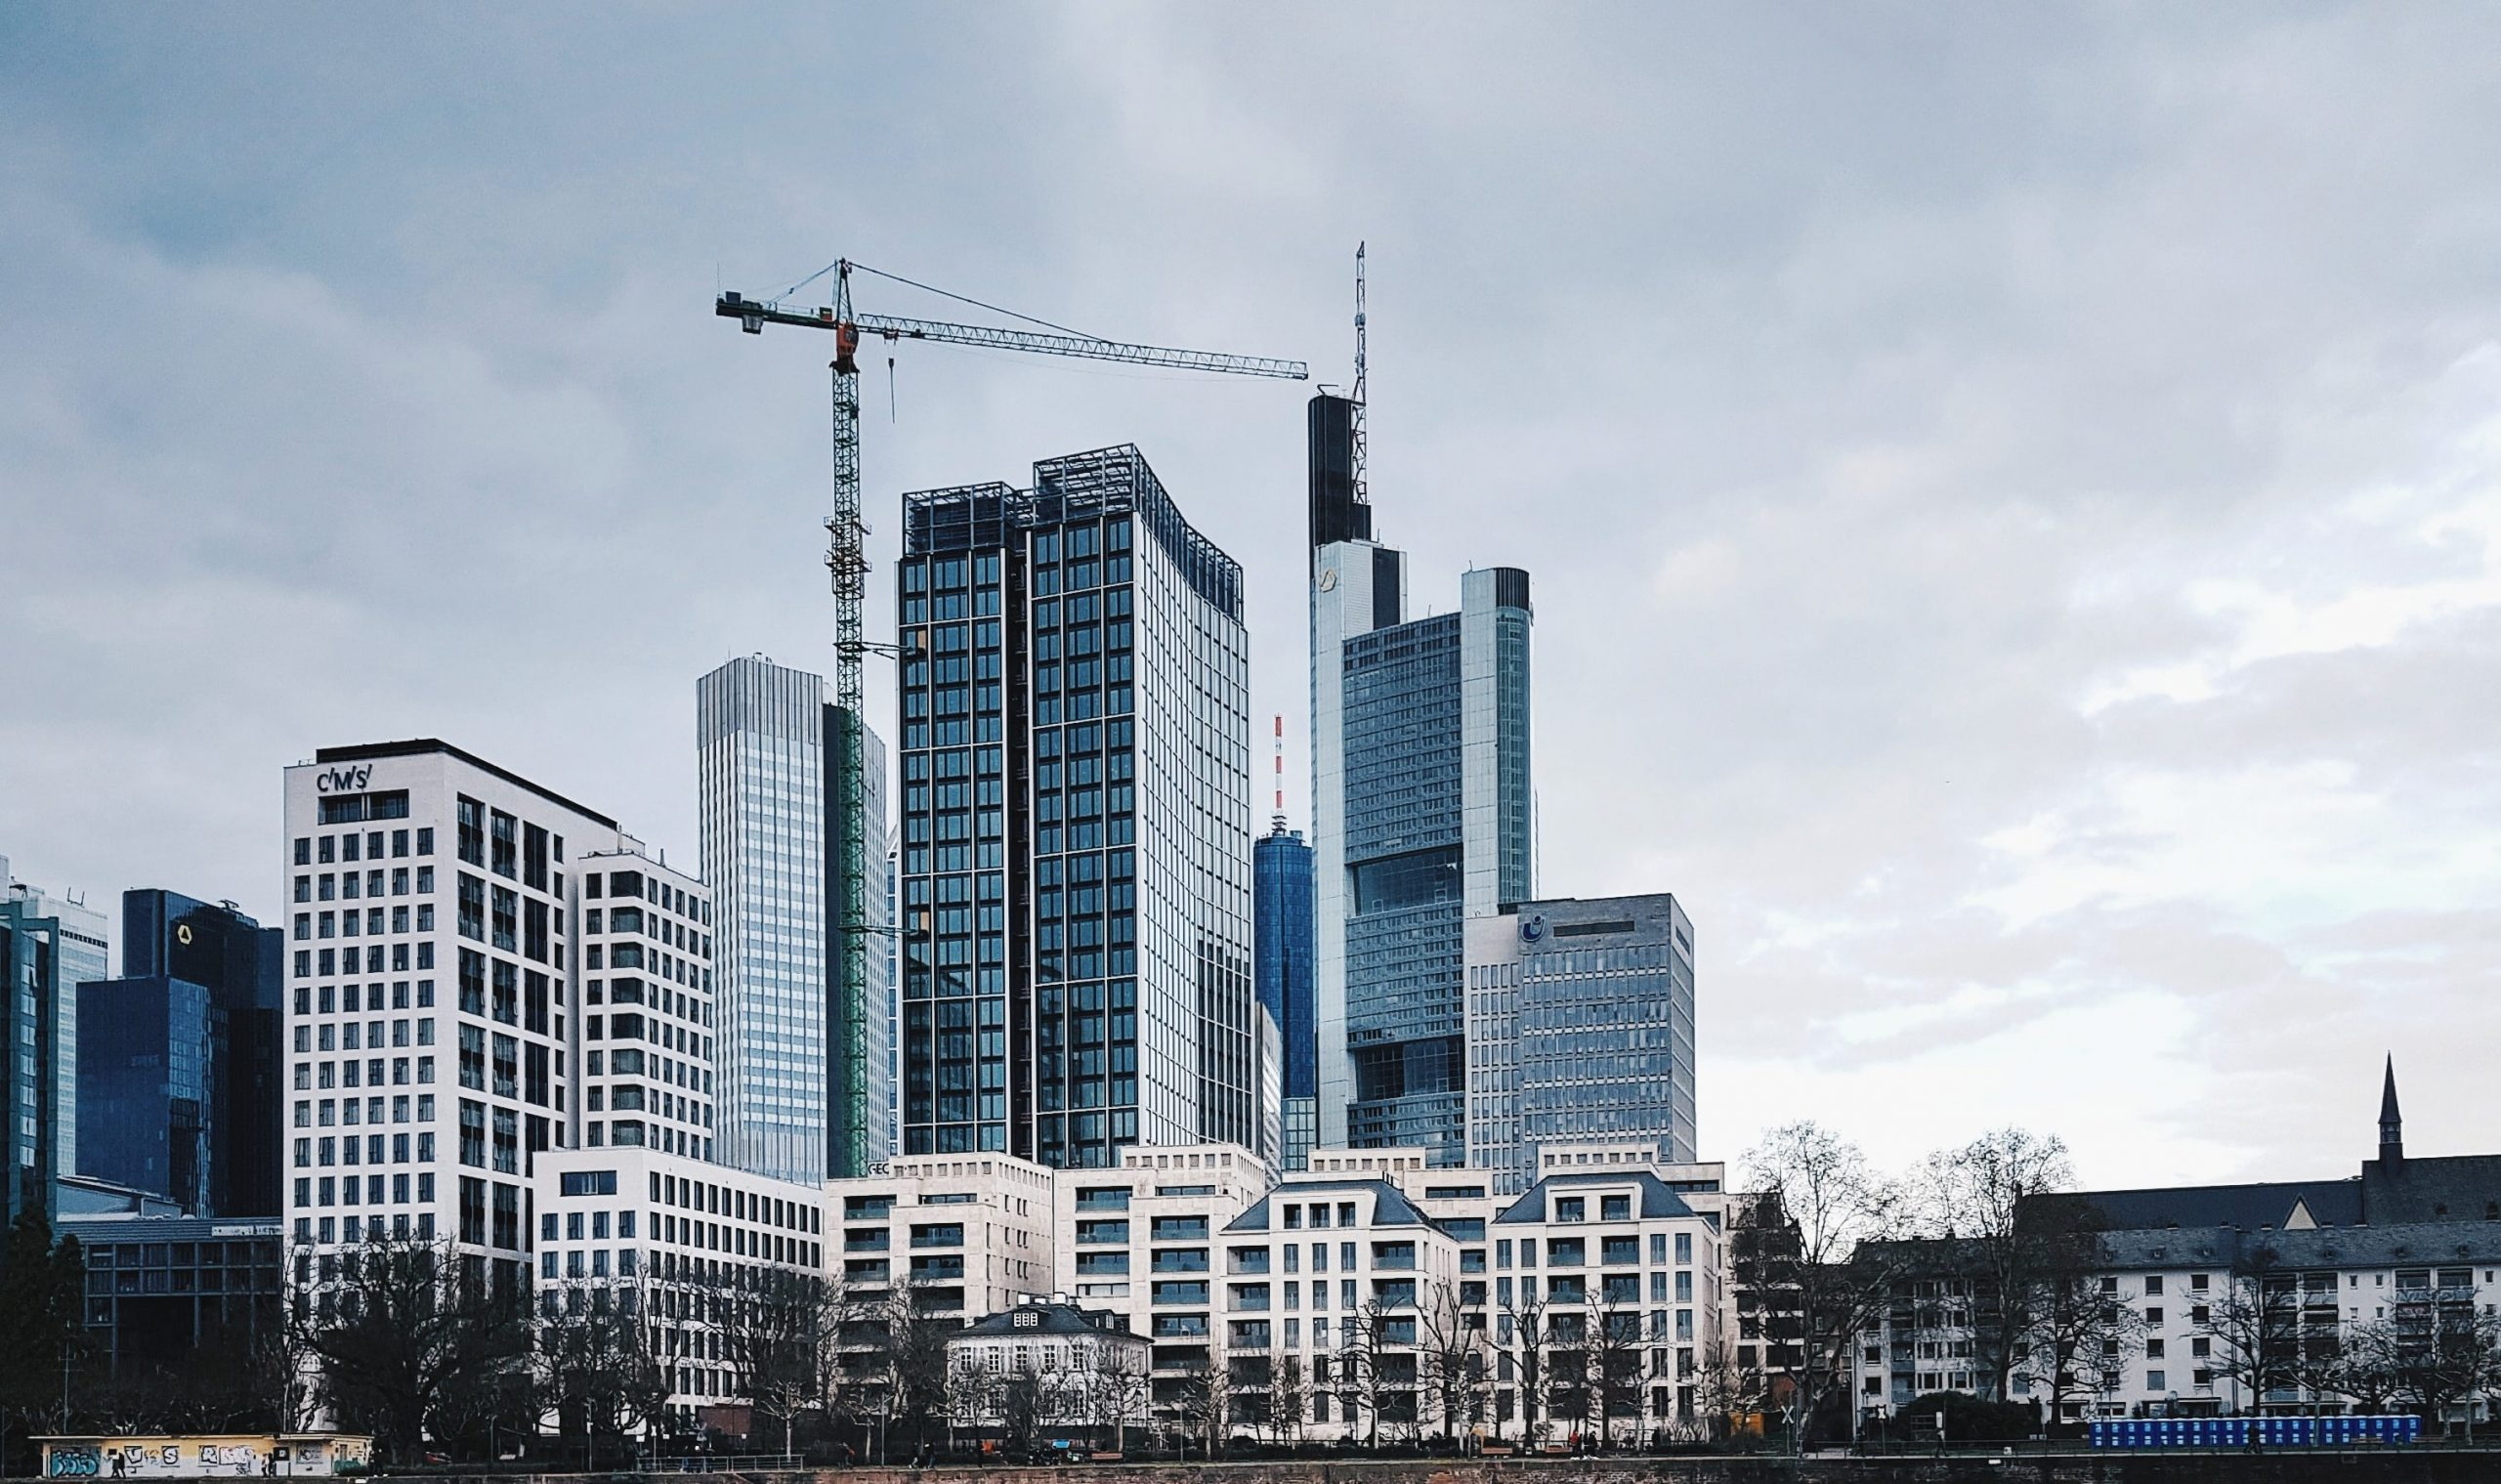 urban office towers with a crane under a cloudy sky